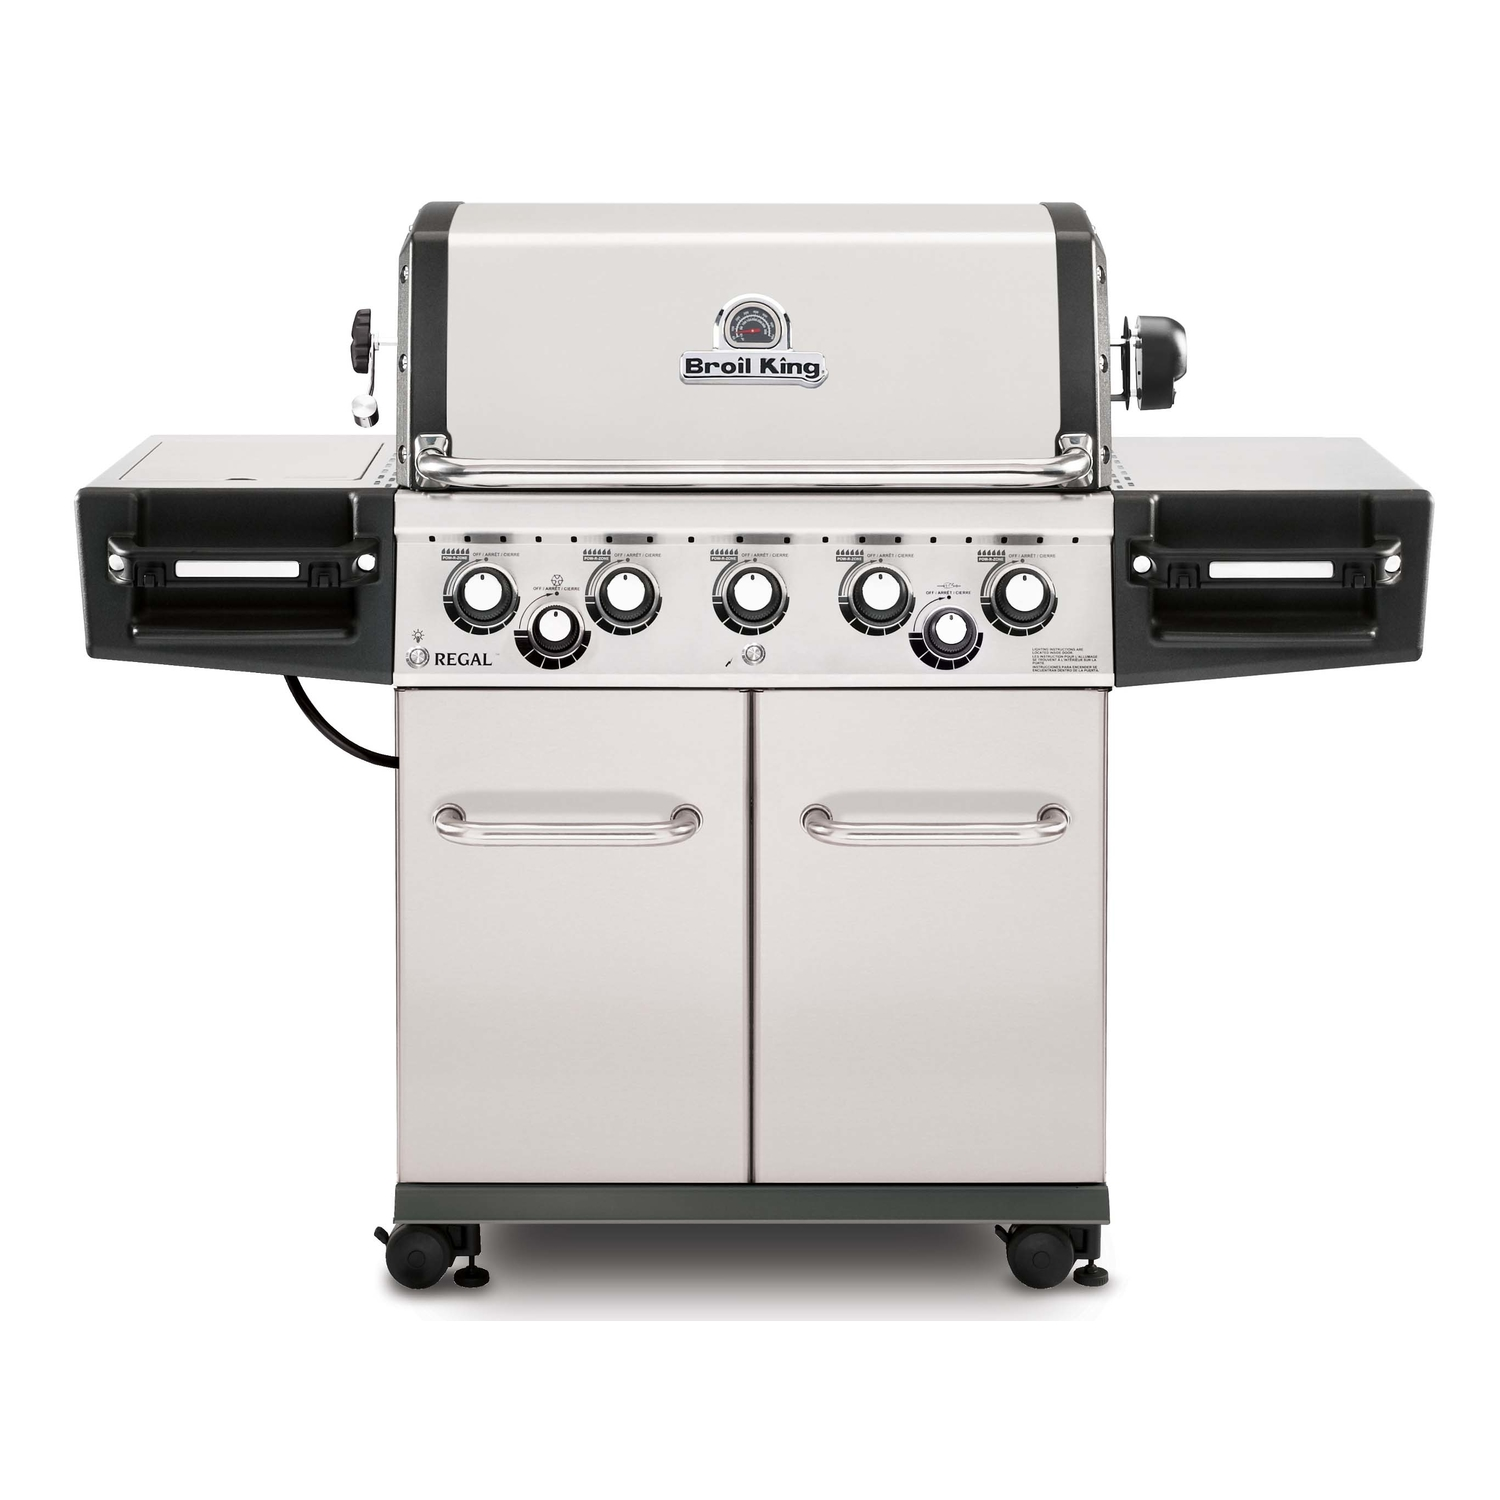 Broil King  Regal S590 Pro  5 burners Propane  Stainless Steel  Grill  55000 BTU